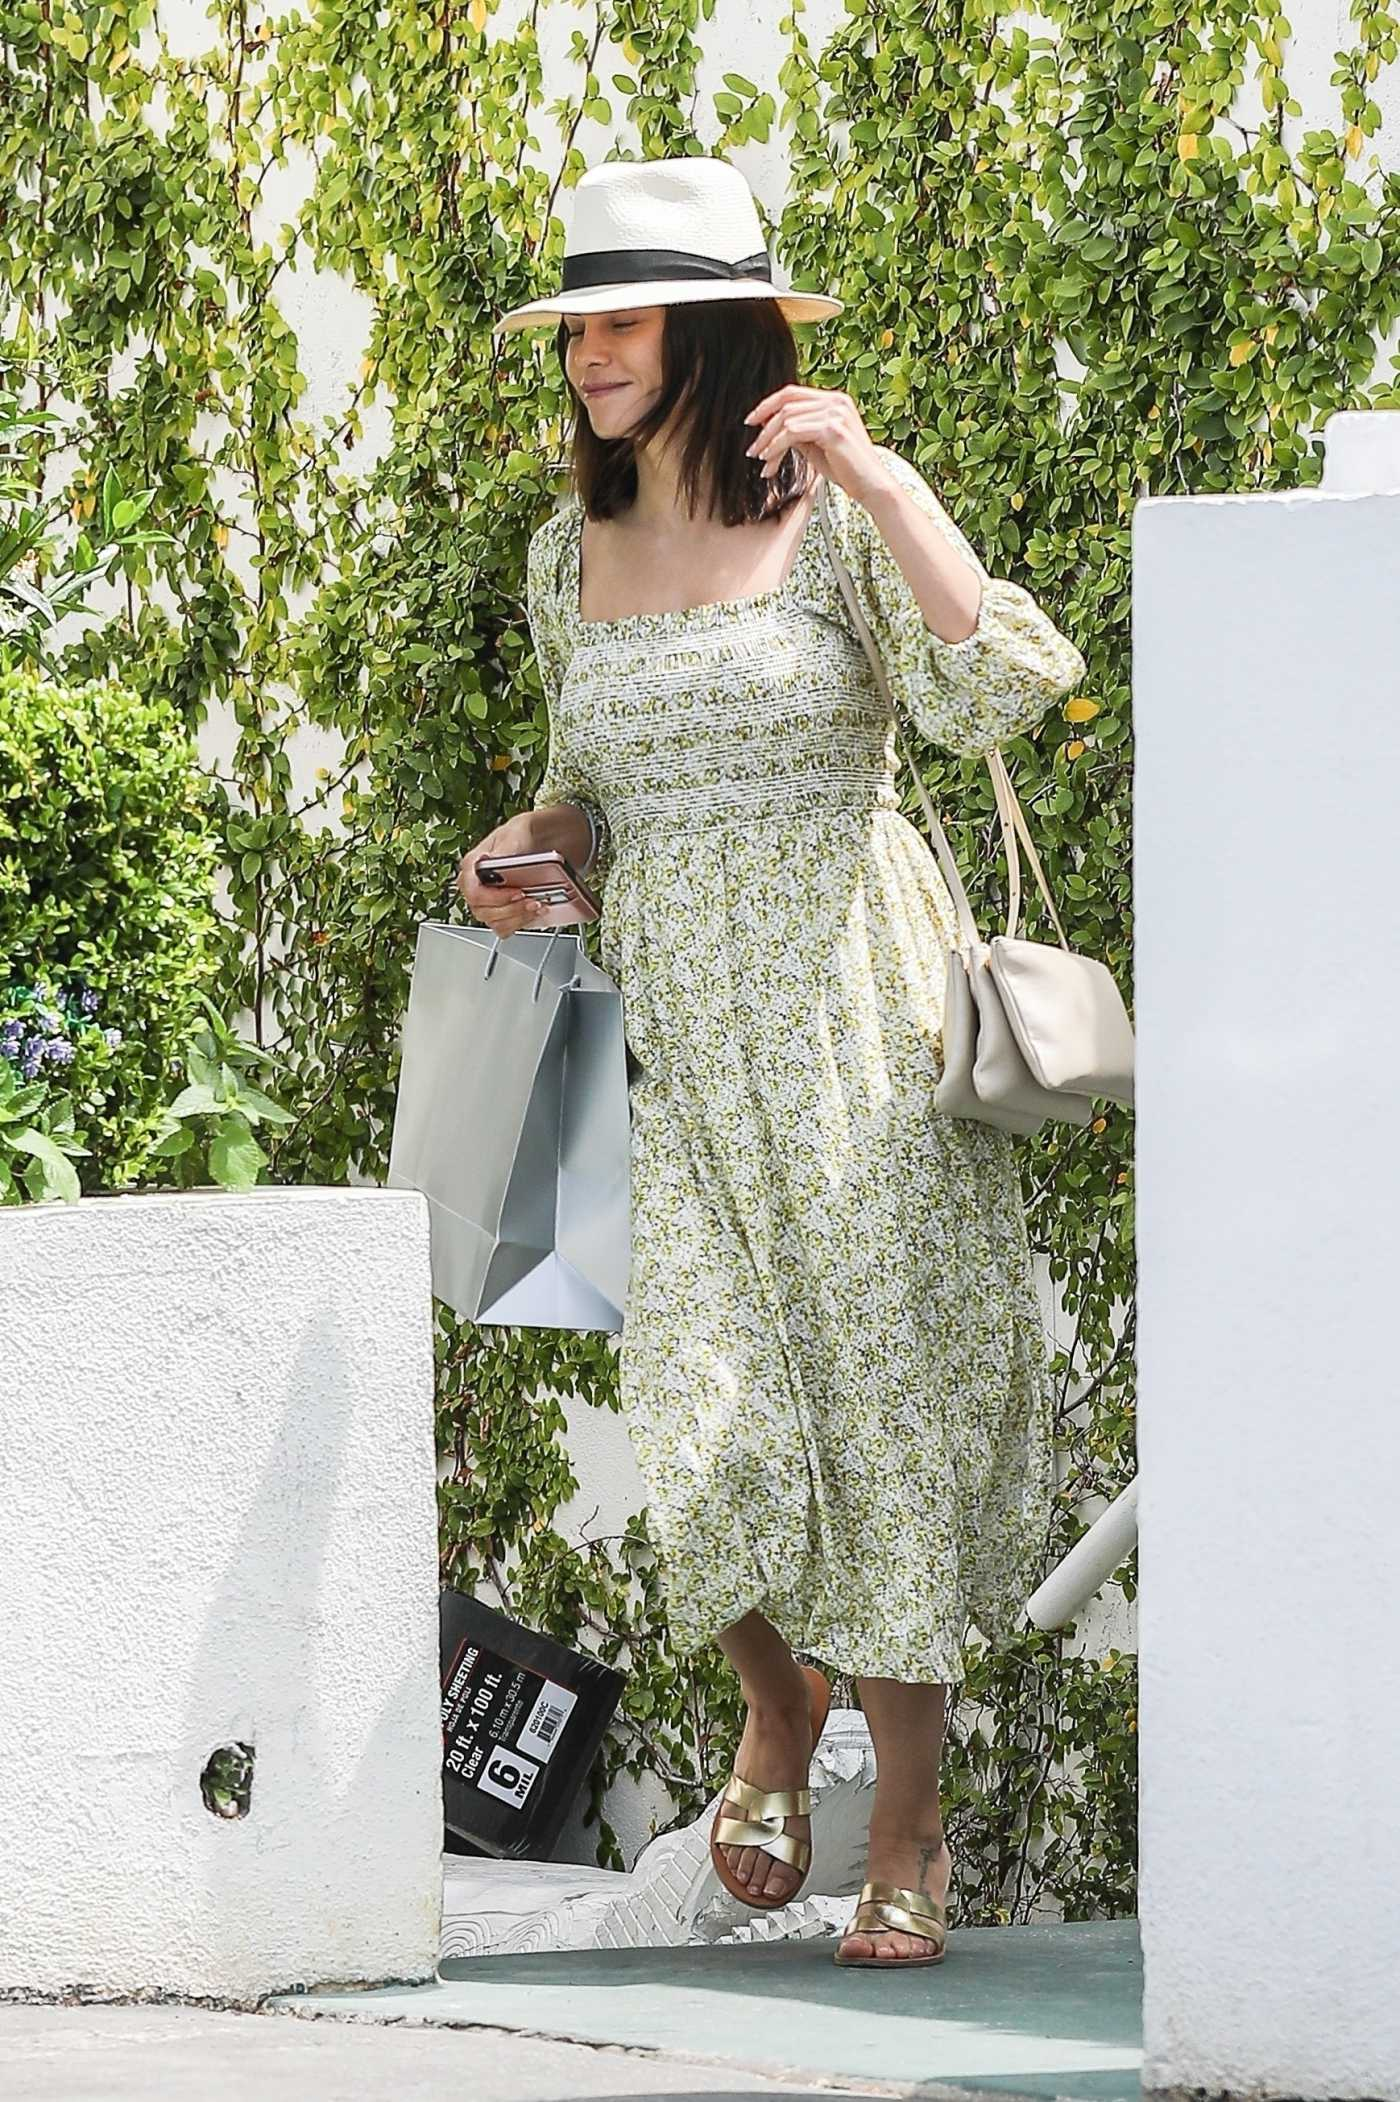 Jenna Dewan in a Green Floral Dress Was Seen Out in Santa Monica 07/06/2019